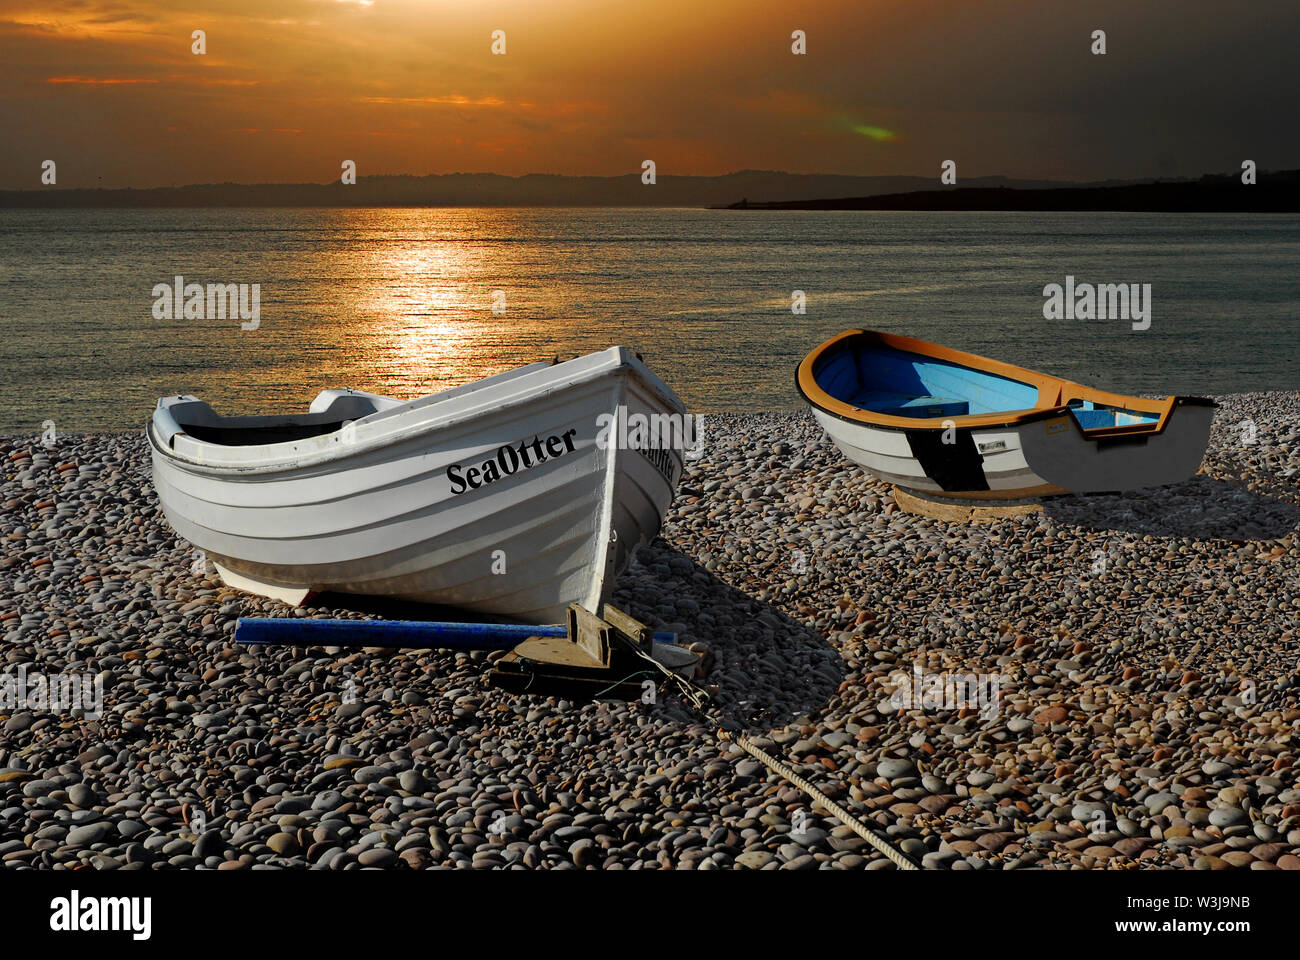 A photo montage of Boats and the Setting Sun over Budleigh Beach. - Stock Image